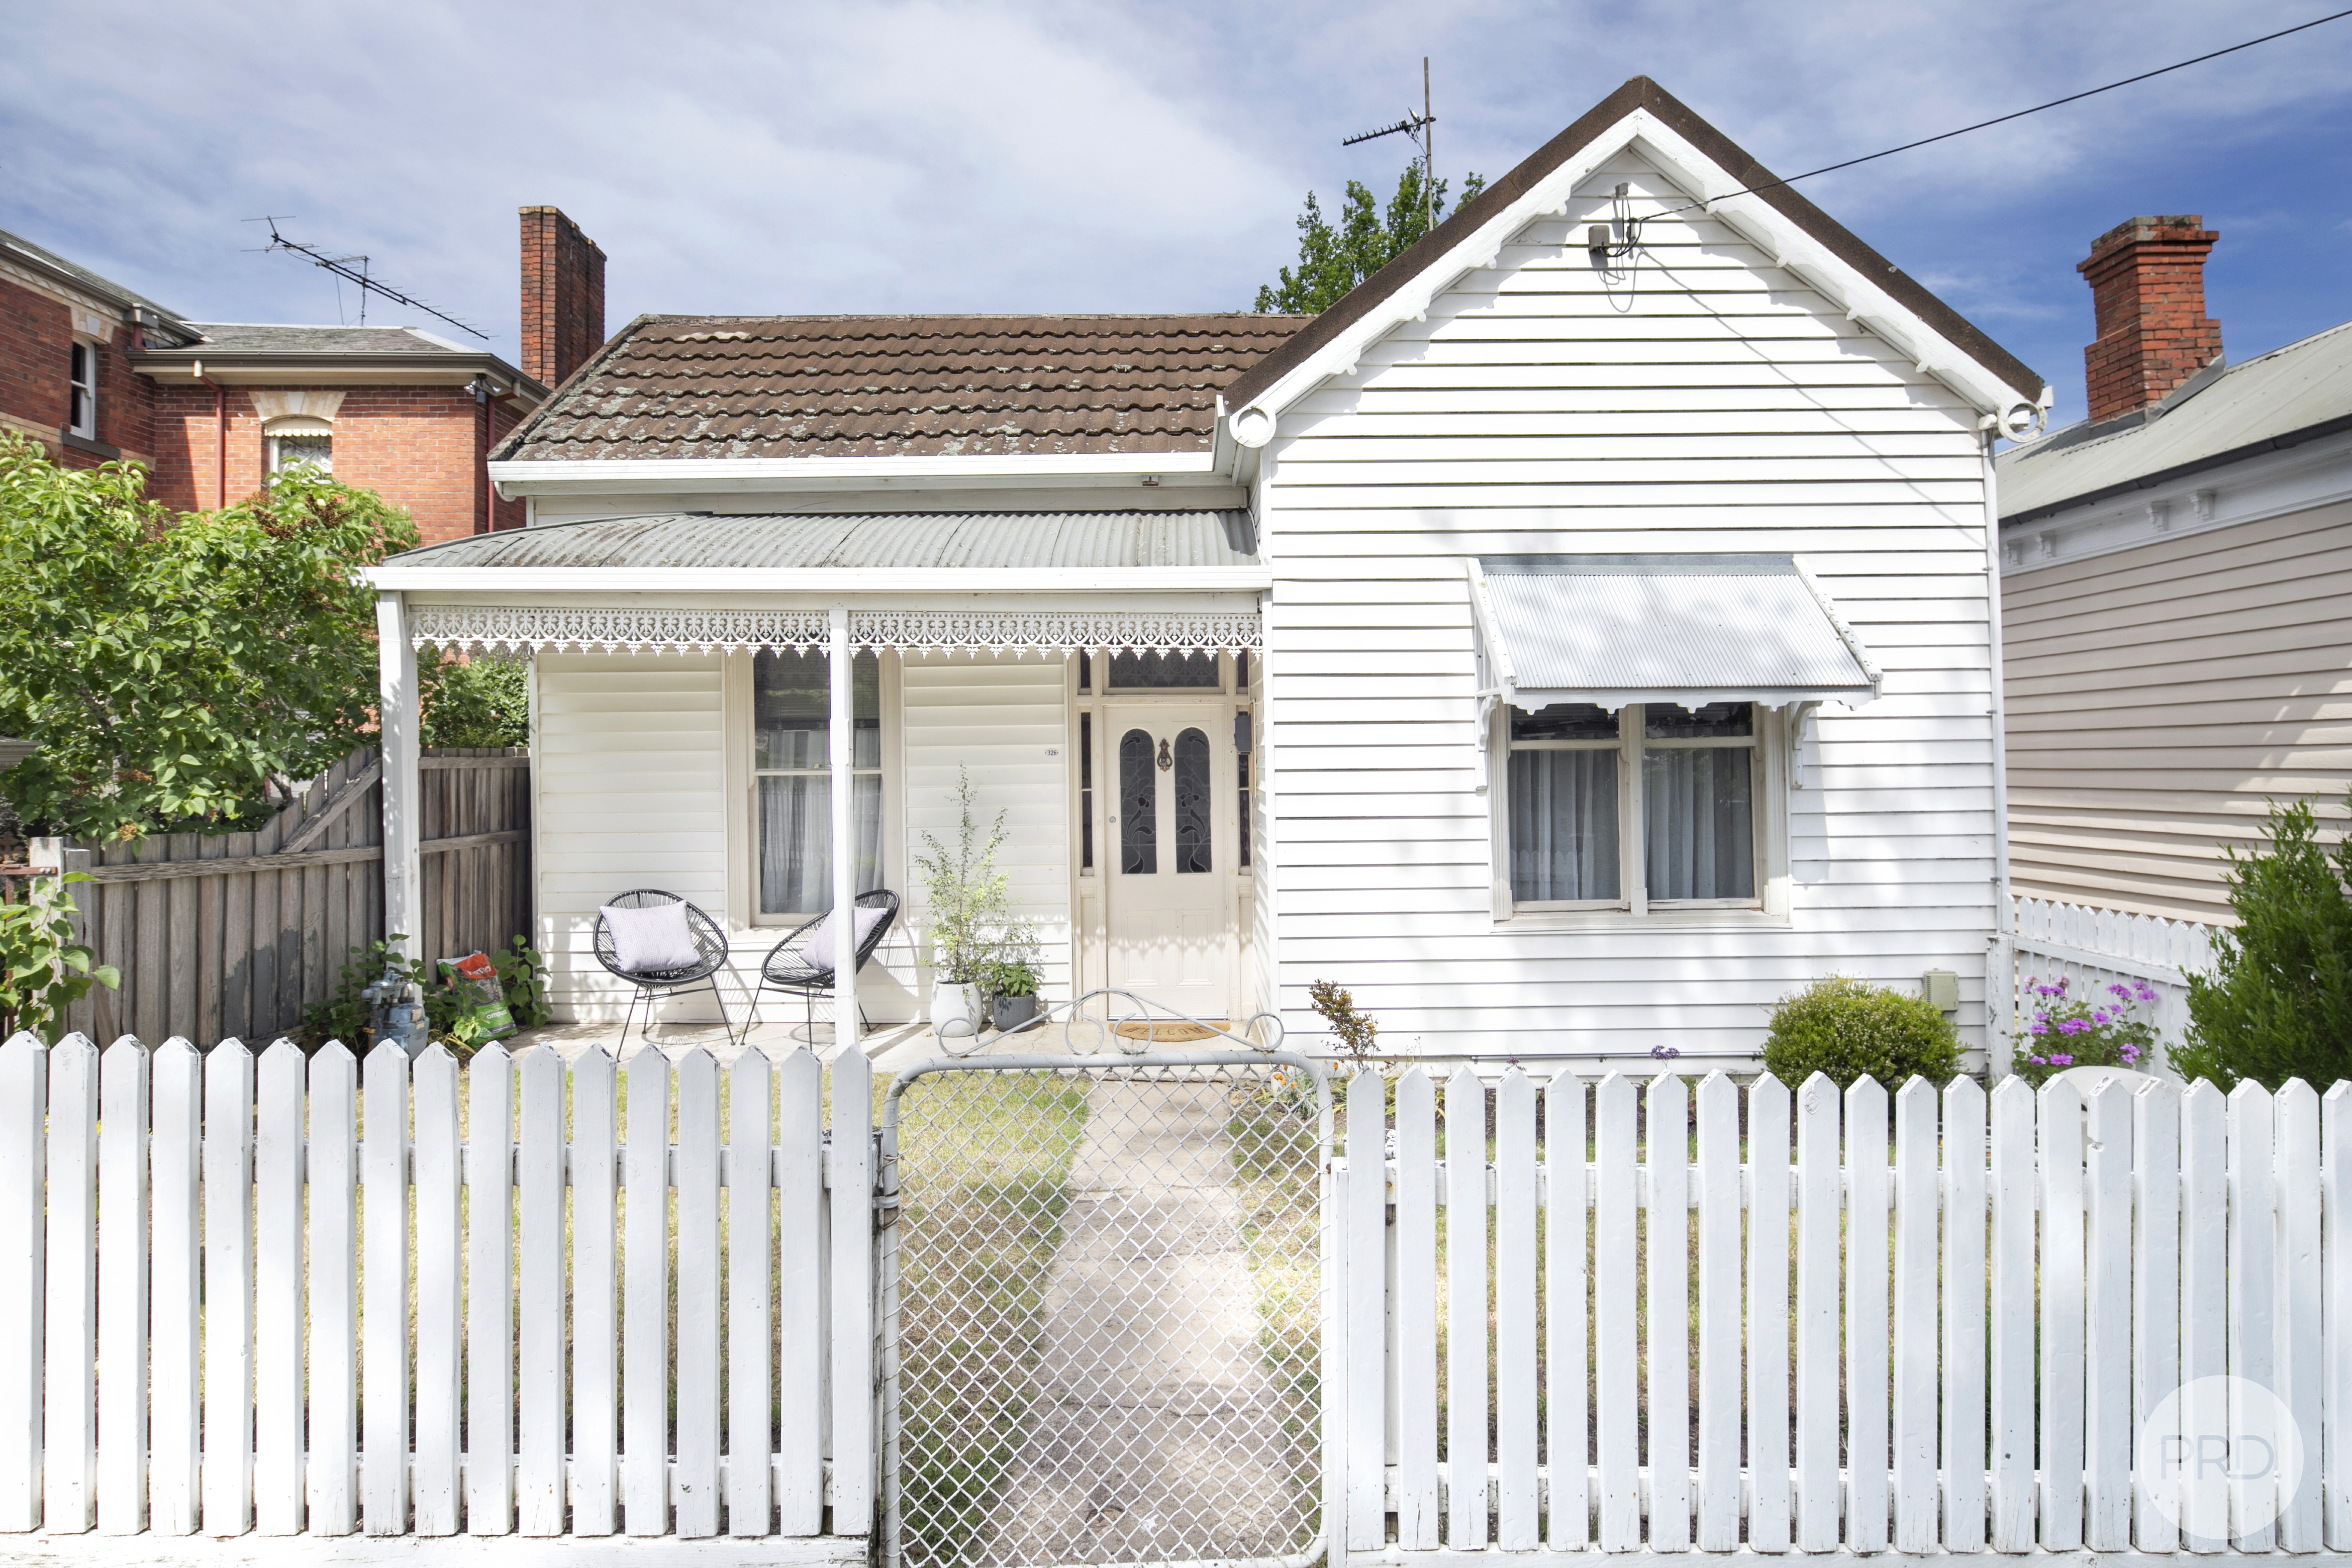 326, Ligar Street, SOLDIERS HILL, VIC 3350